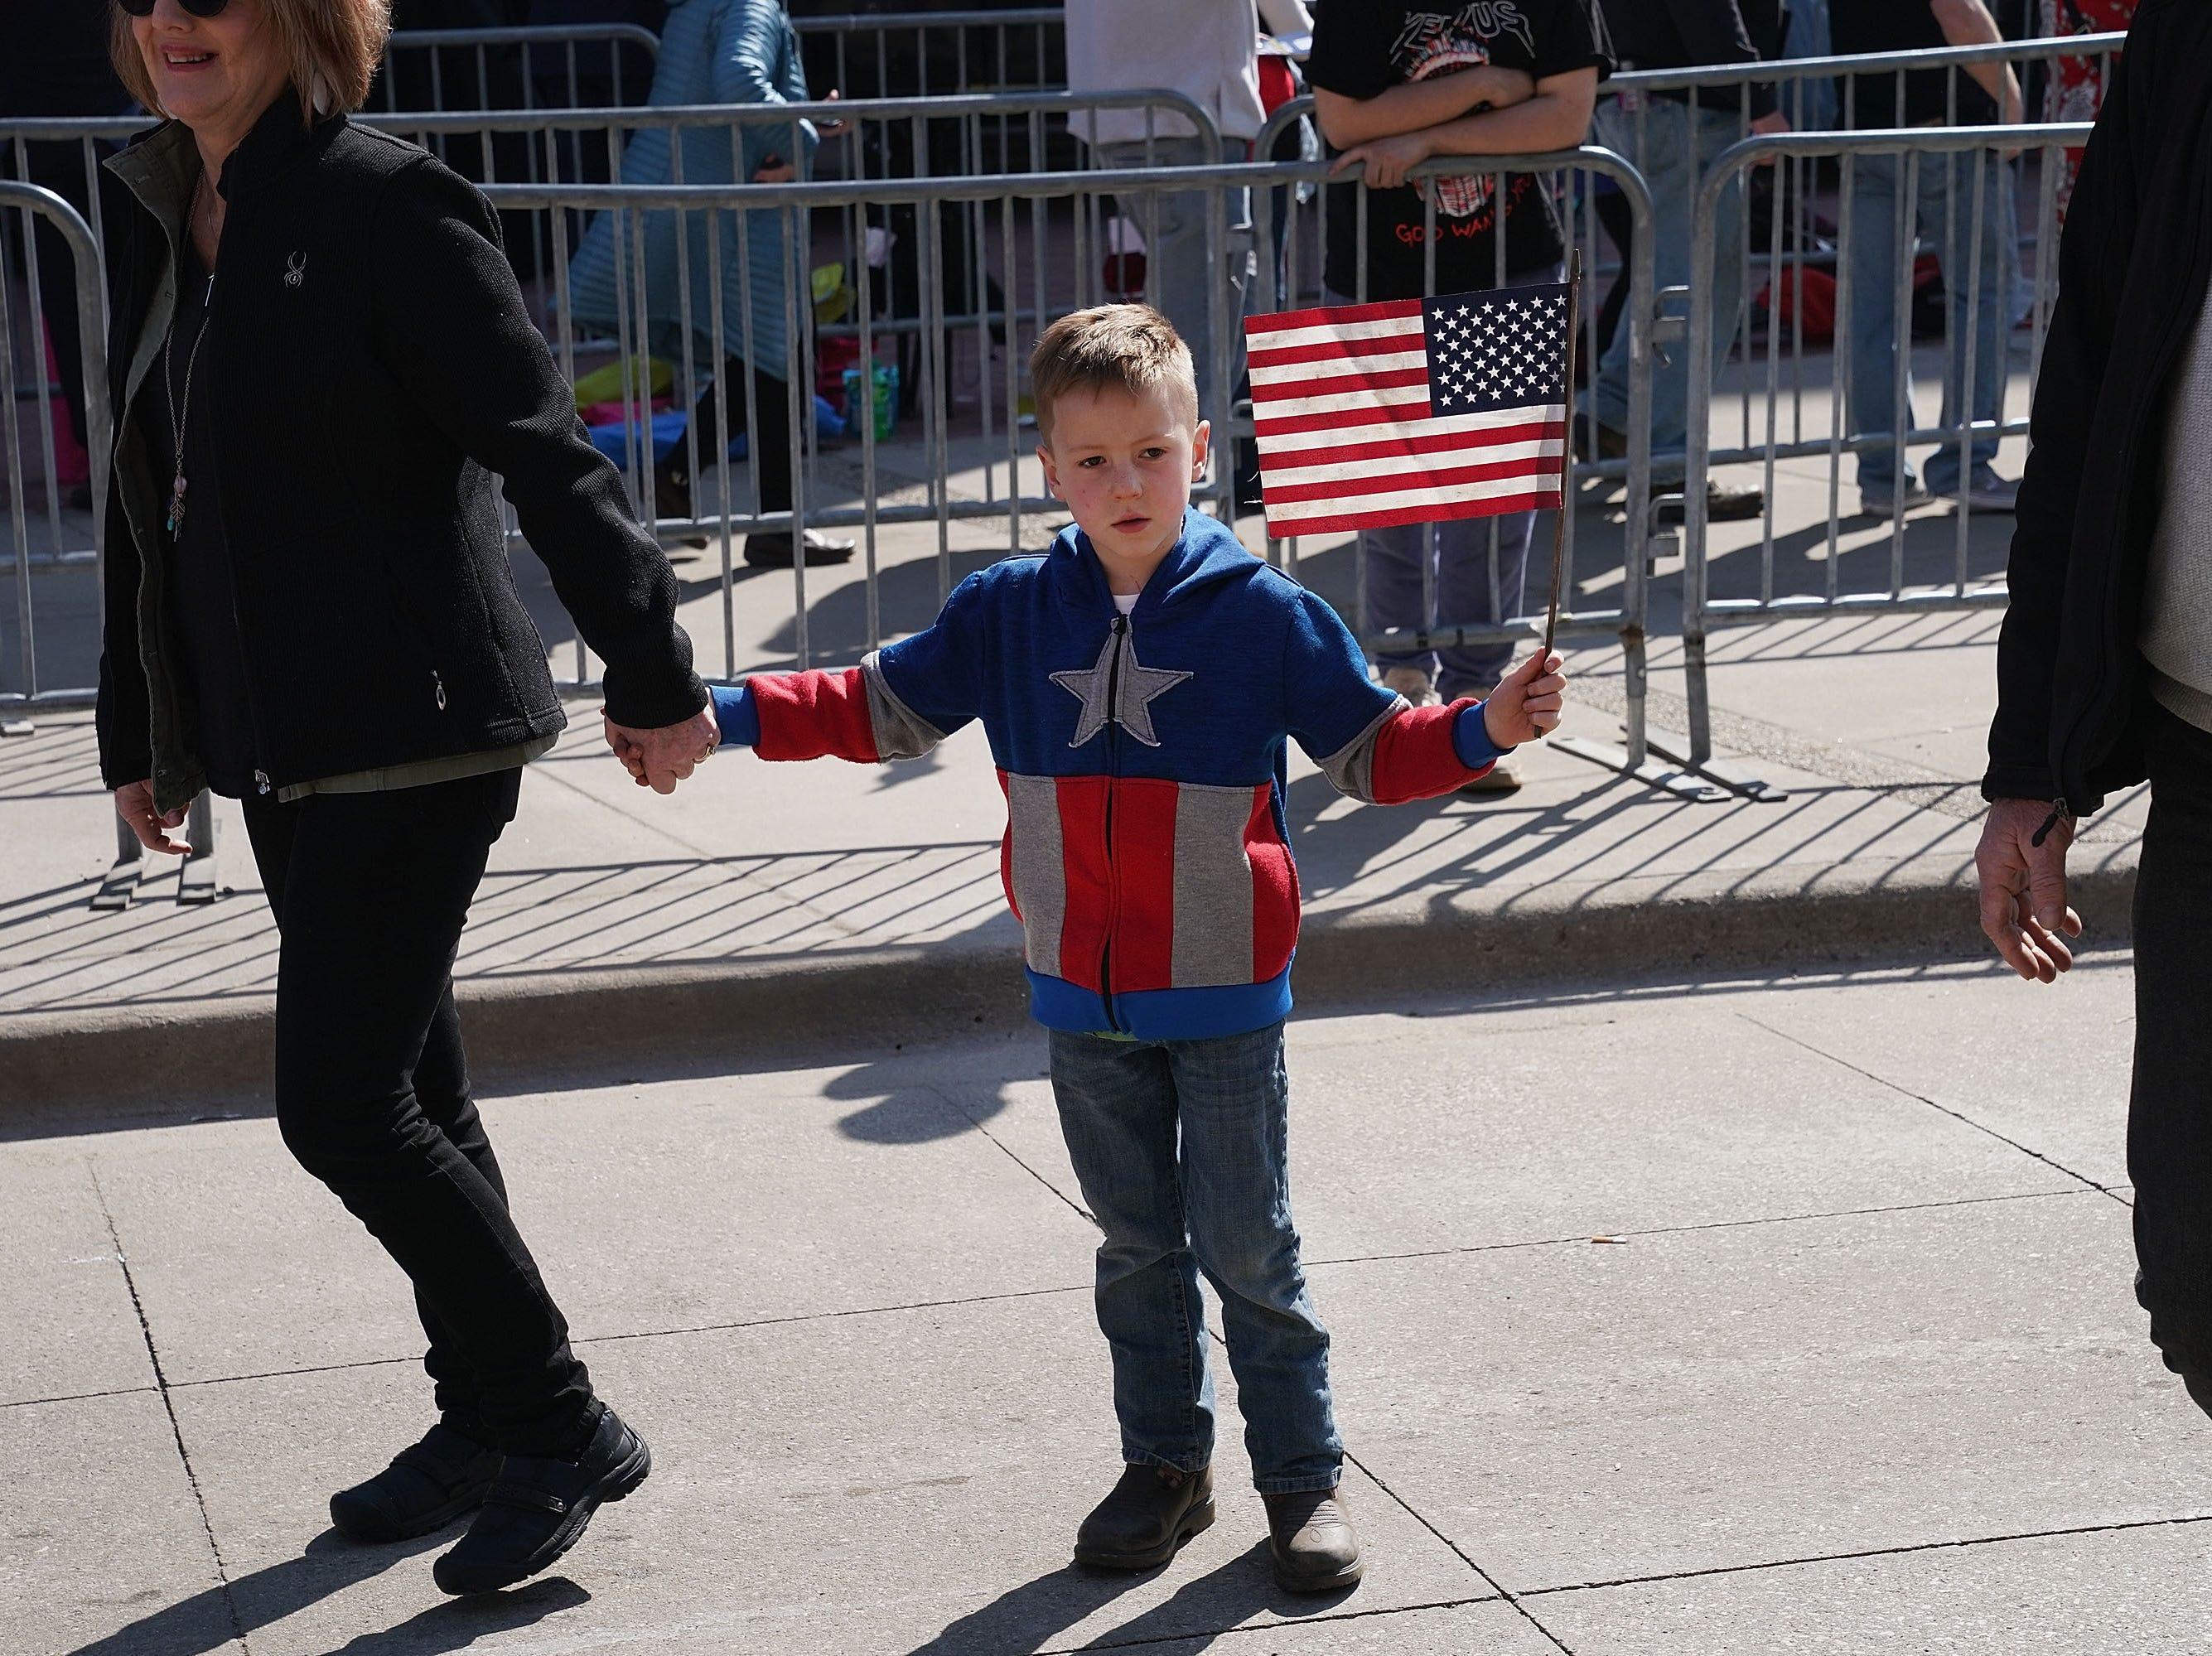 A young boy pauses to watch anti-Trump demonstrators protest outside of the Van Andel Arena where President Donald Trump was scheduled to hold a rally on March 28, 2019 in Grand Rapids, Michigan. Grand Rapids was the final city Trump visited during his 2016 campaign.